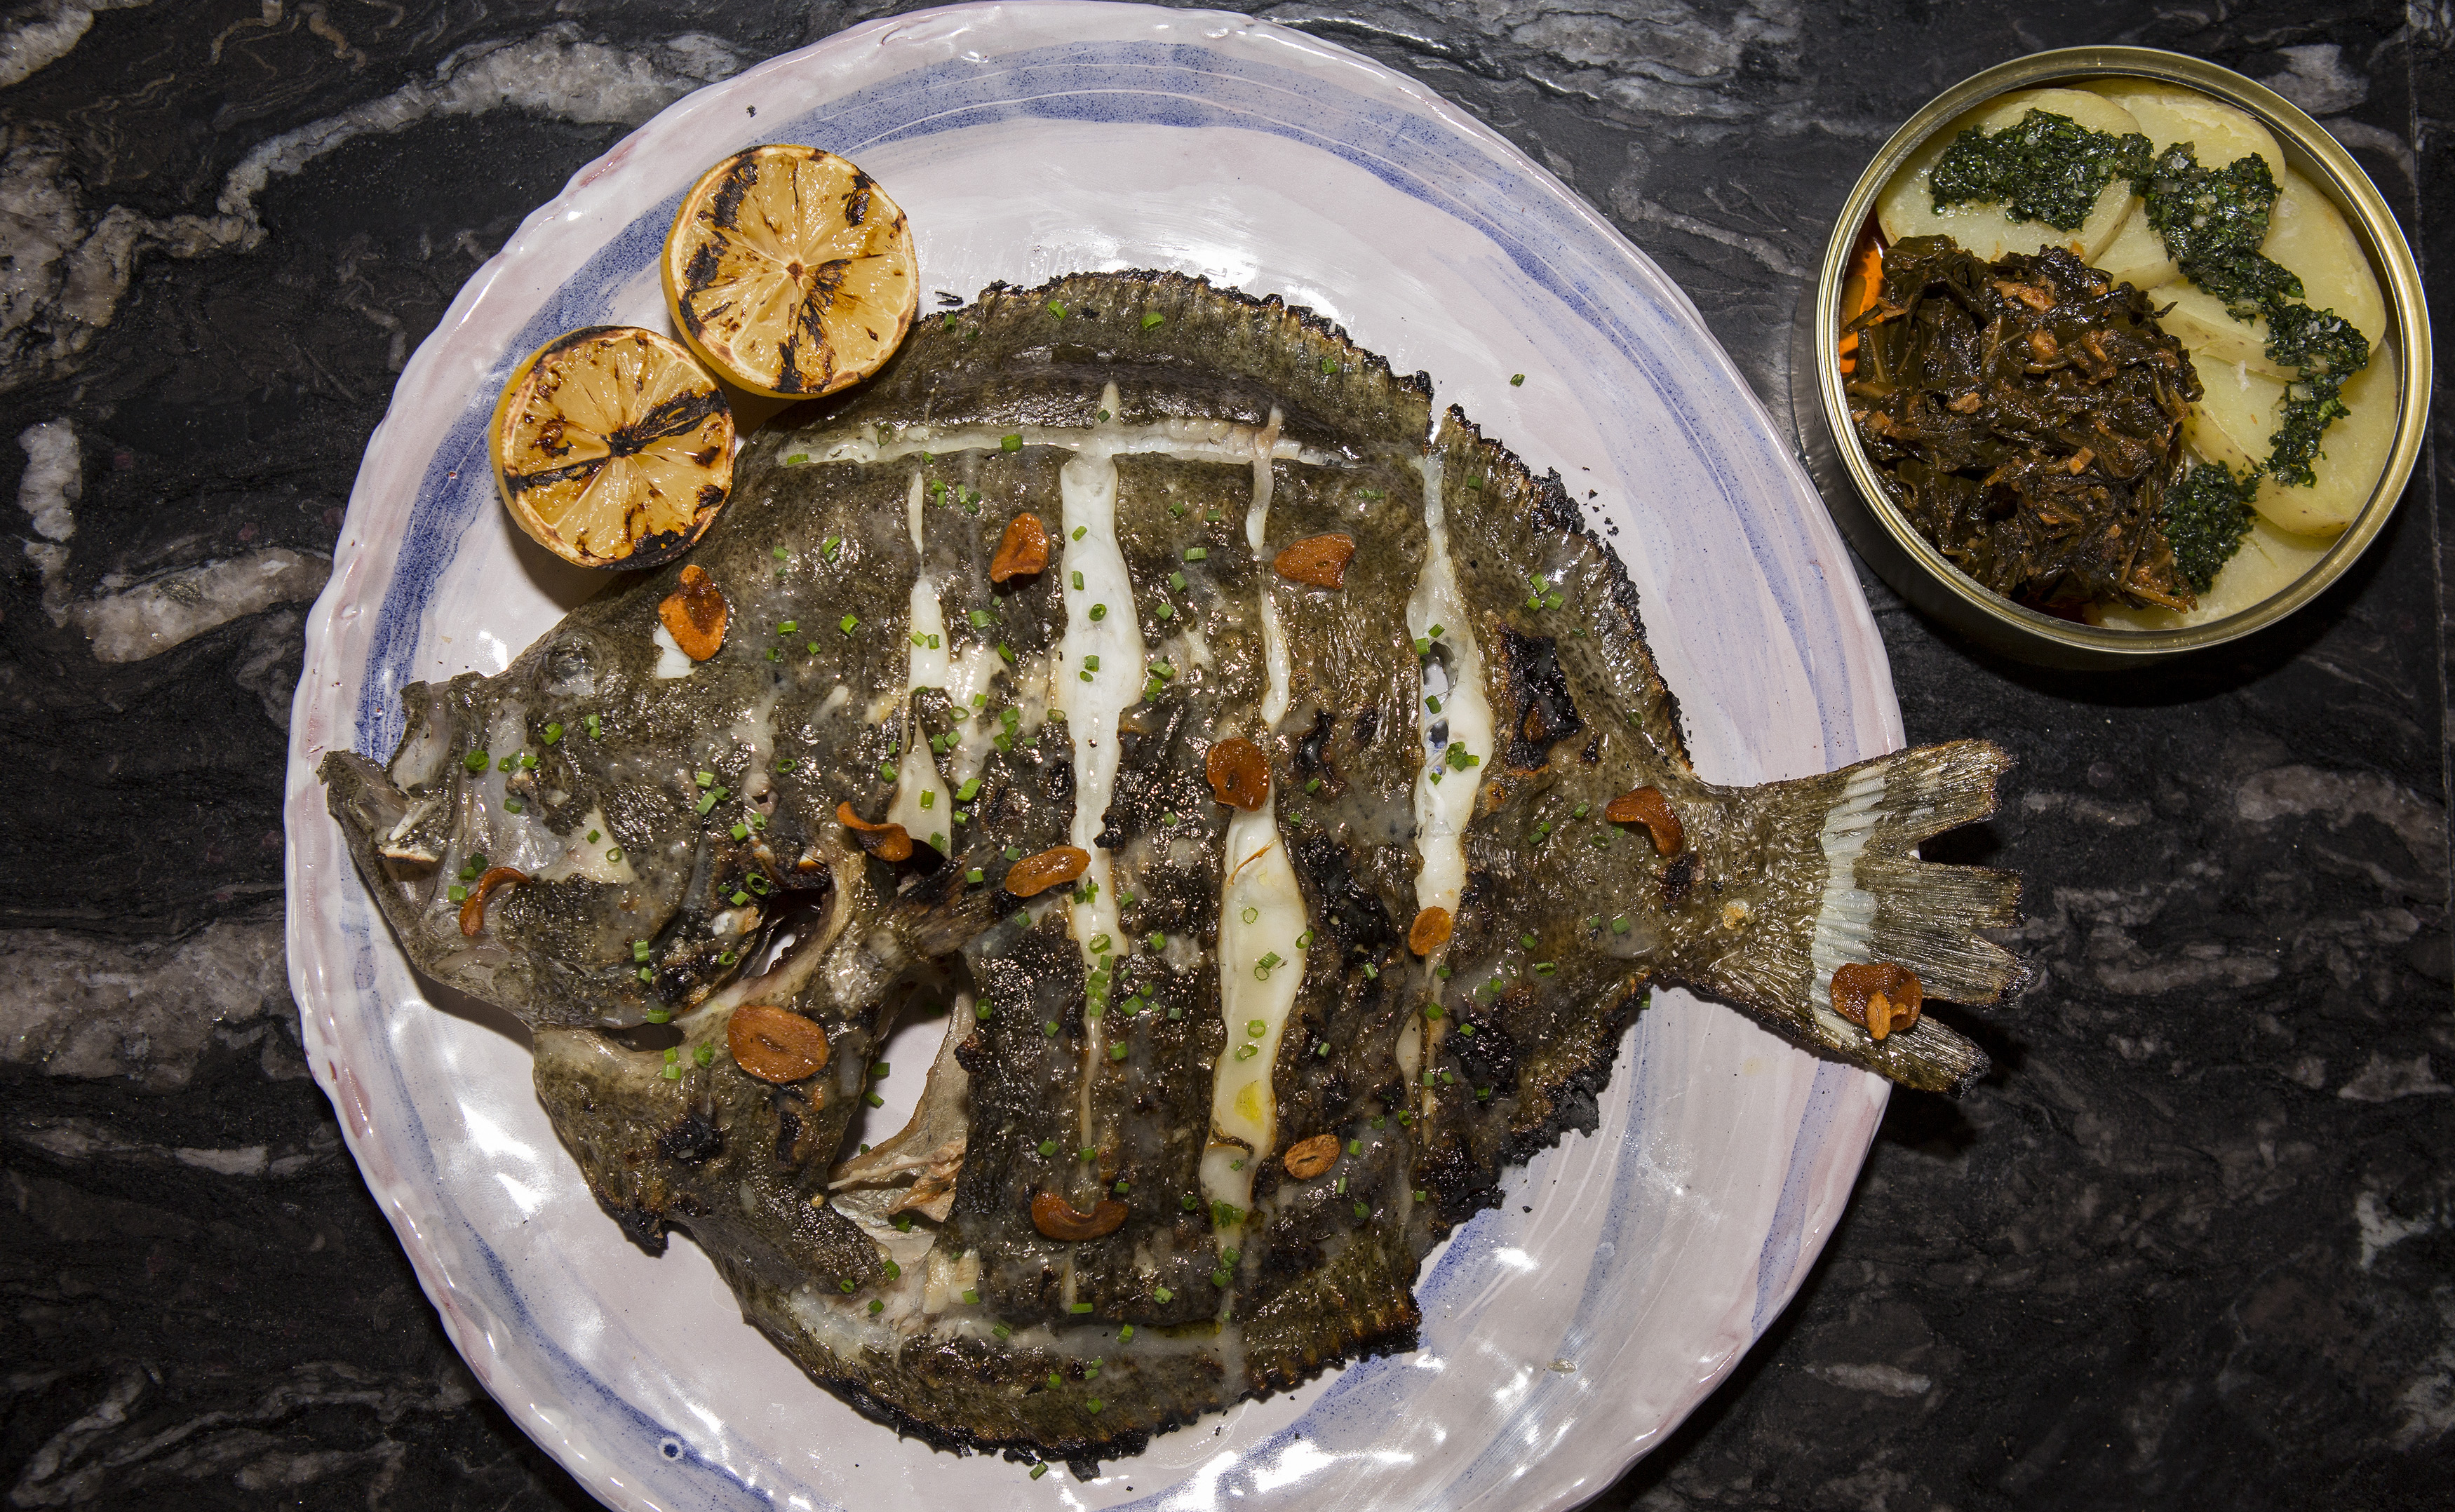 New Portuguese Restaurant Porto Brings World-Famous Galicia Seafood to West Town